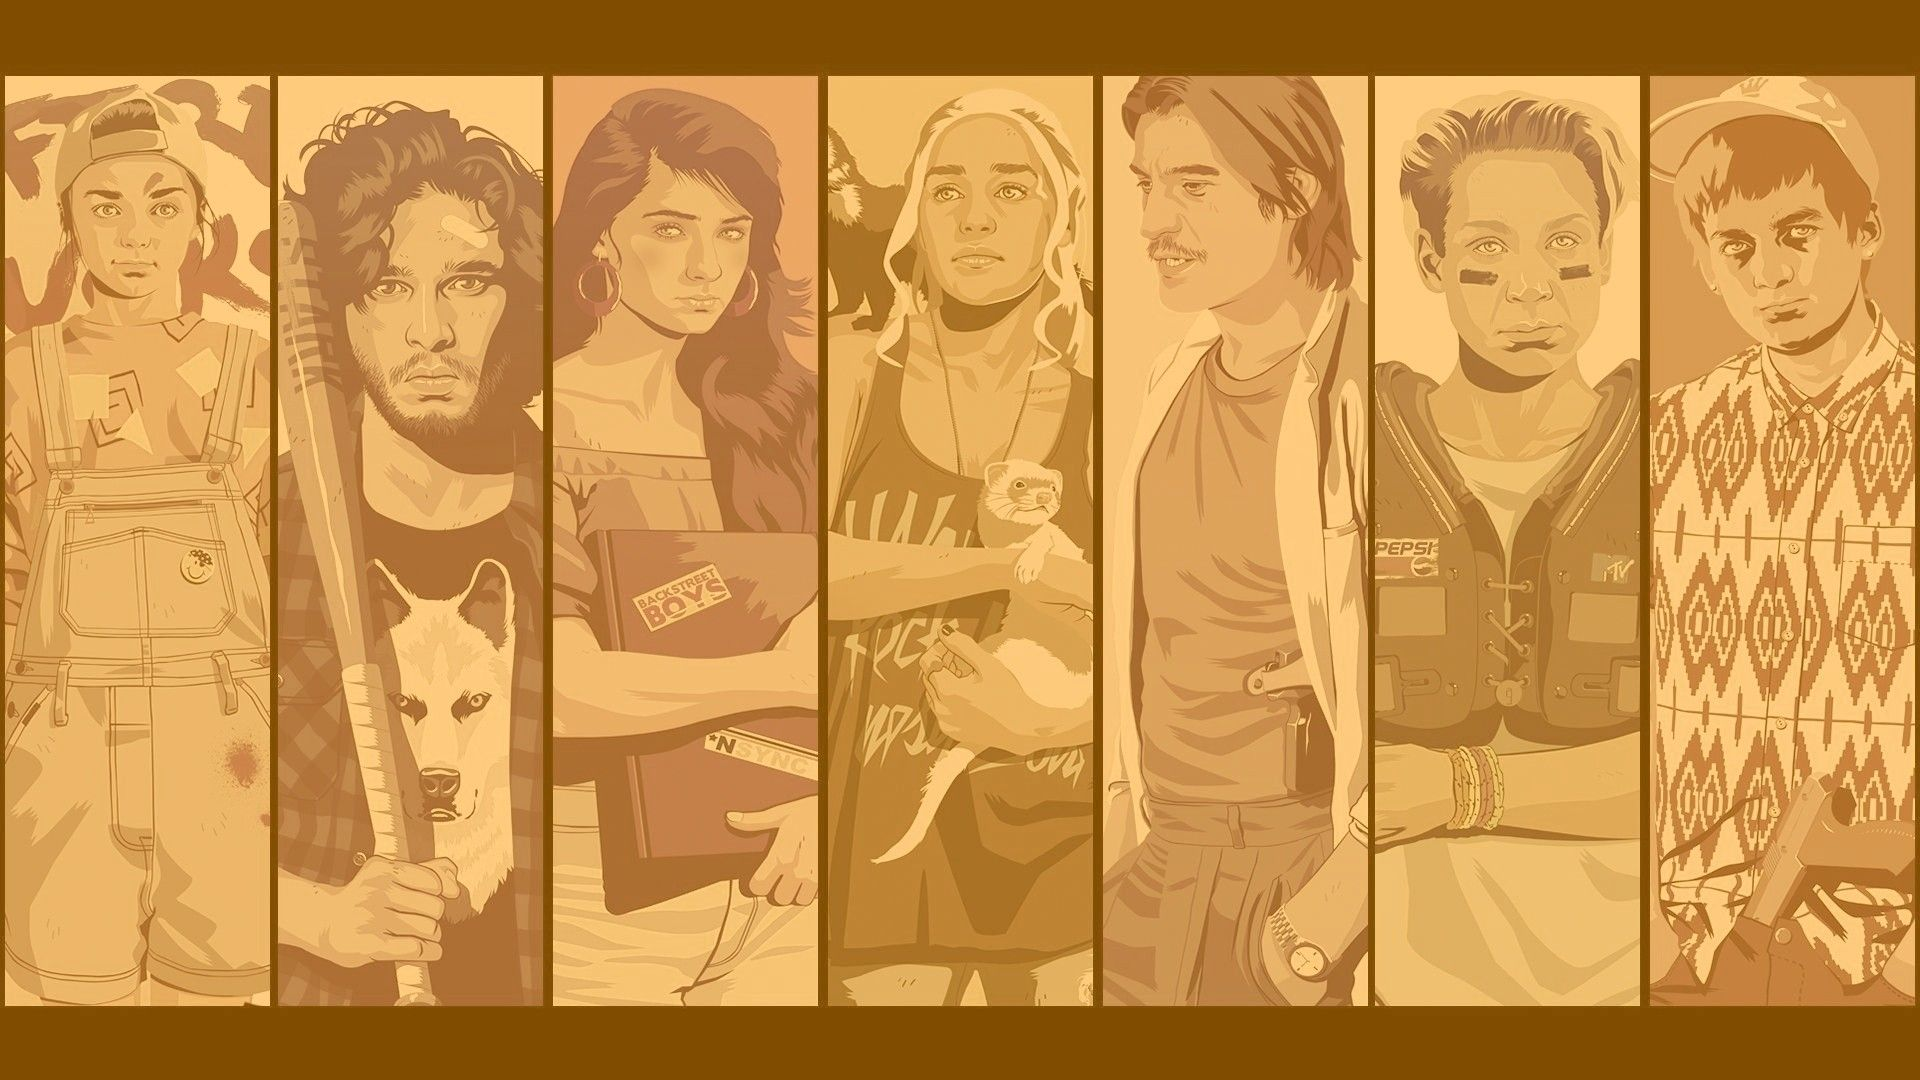 Game of Thrones cool art